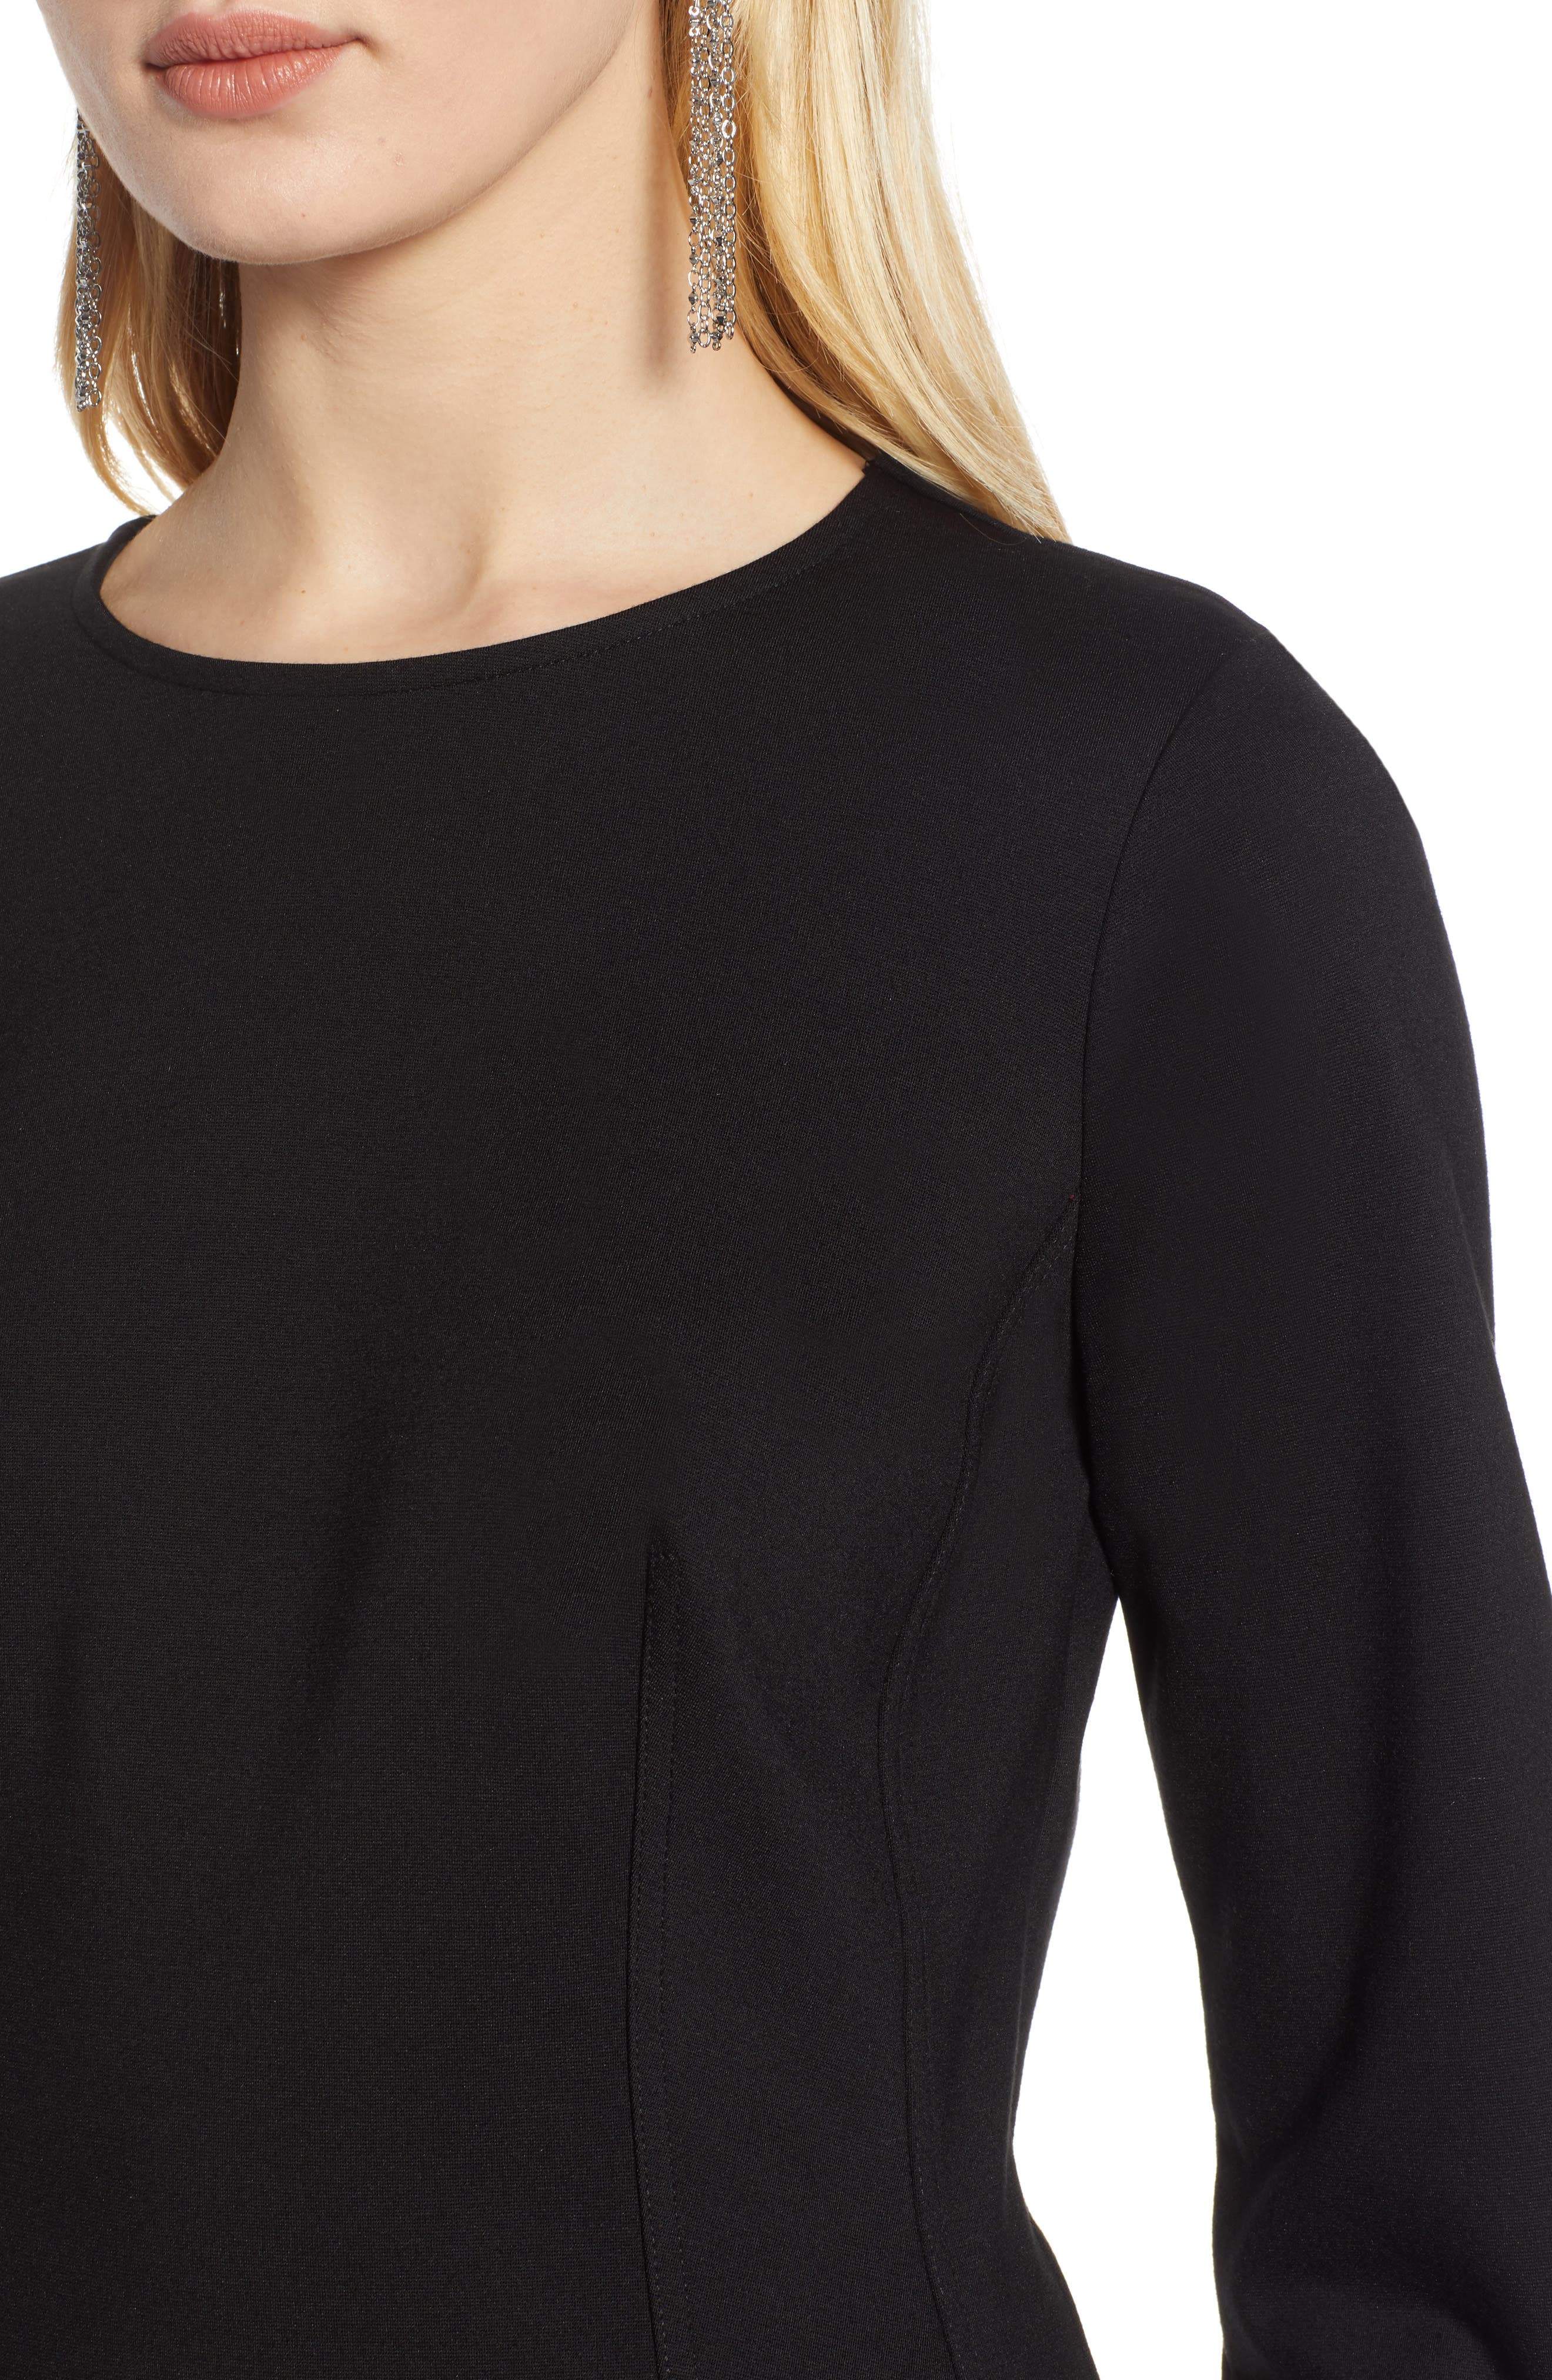 HALOGEN<SUP>®</SUP>, Structured Stretch Knit Top, Alternate thumbnail 4, color, BLACK